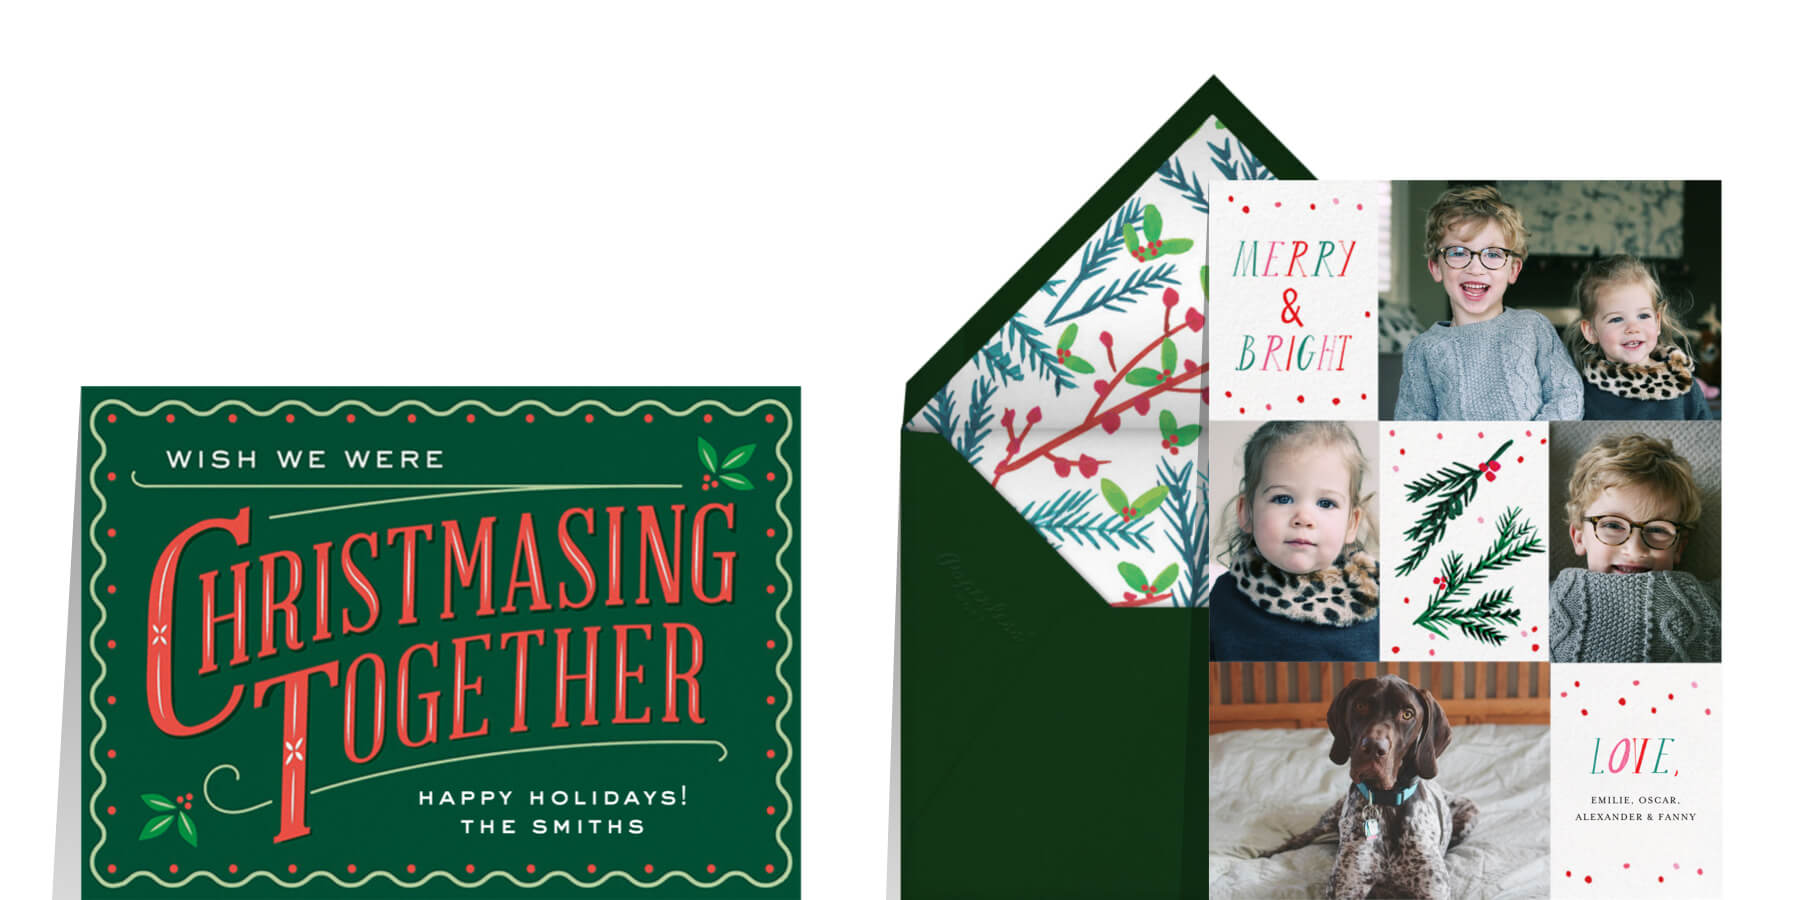 Christmas card wording for your family featuring green and red greeting cards from Cheree Berry